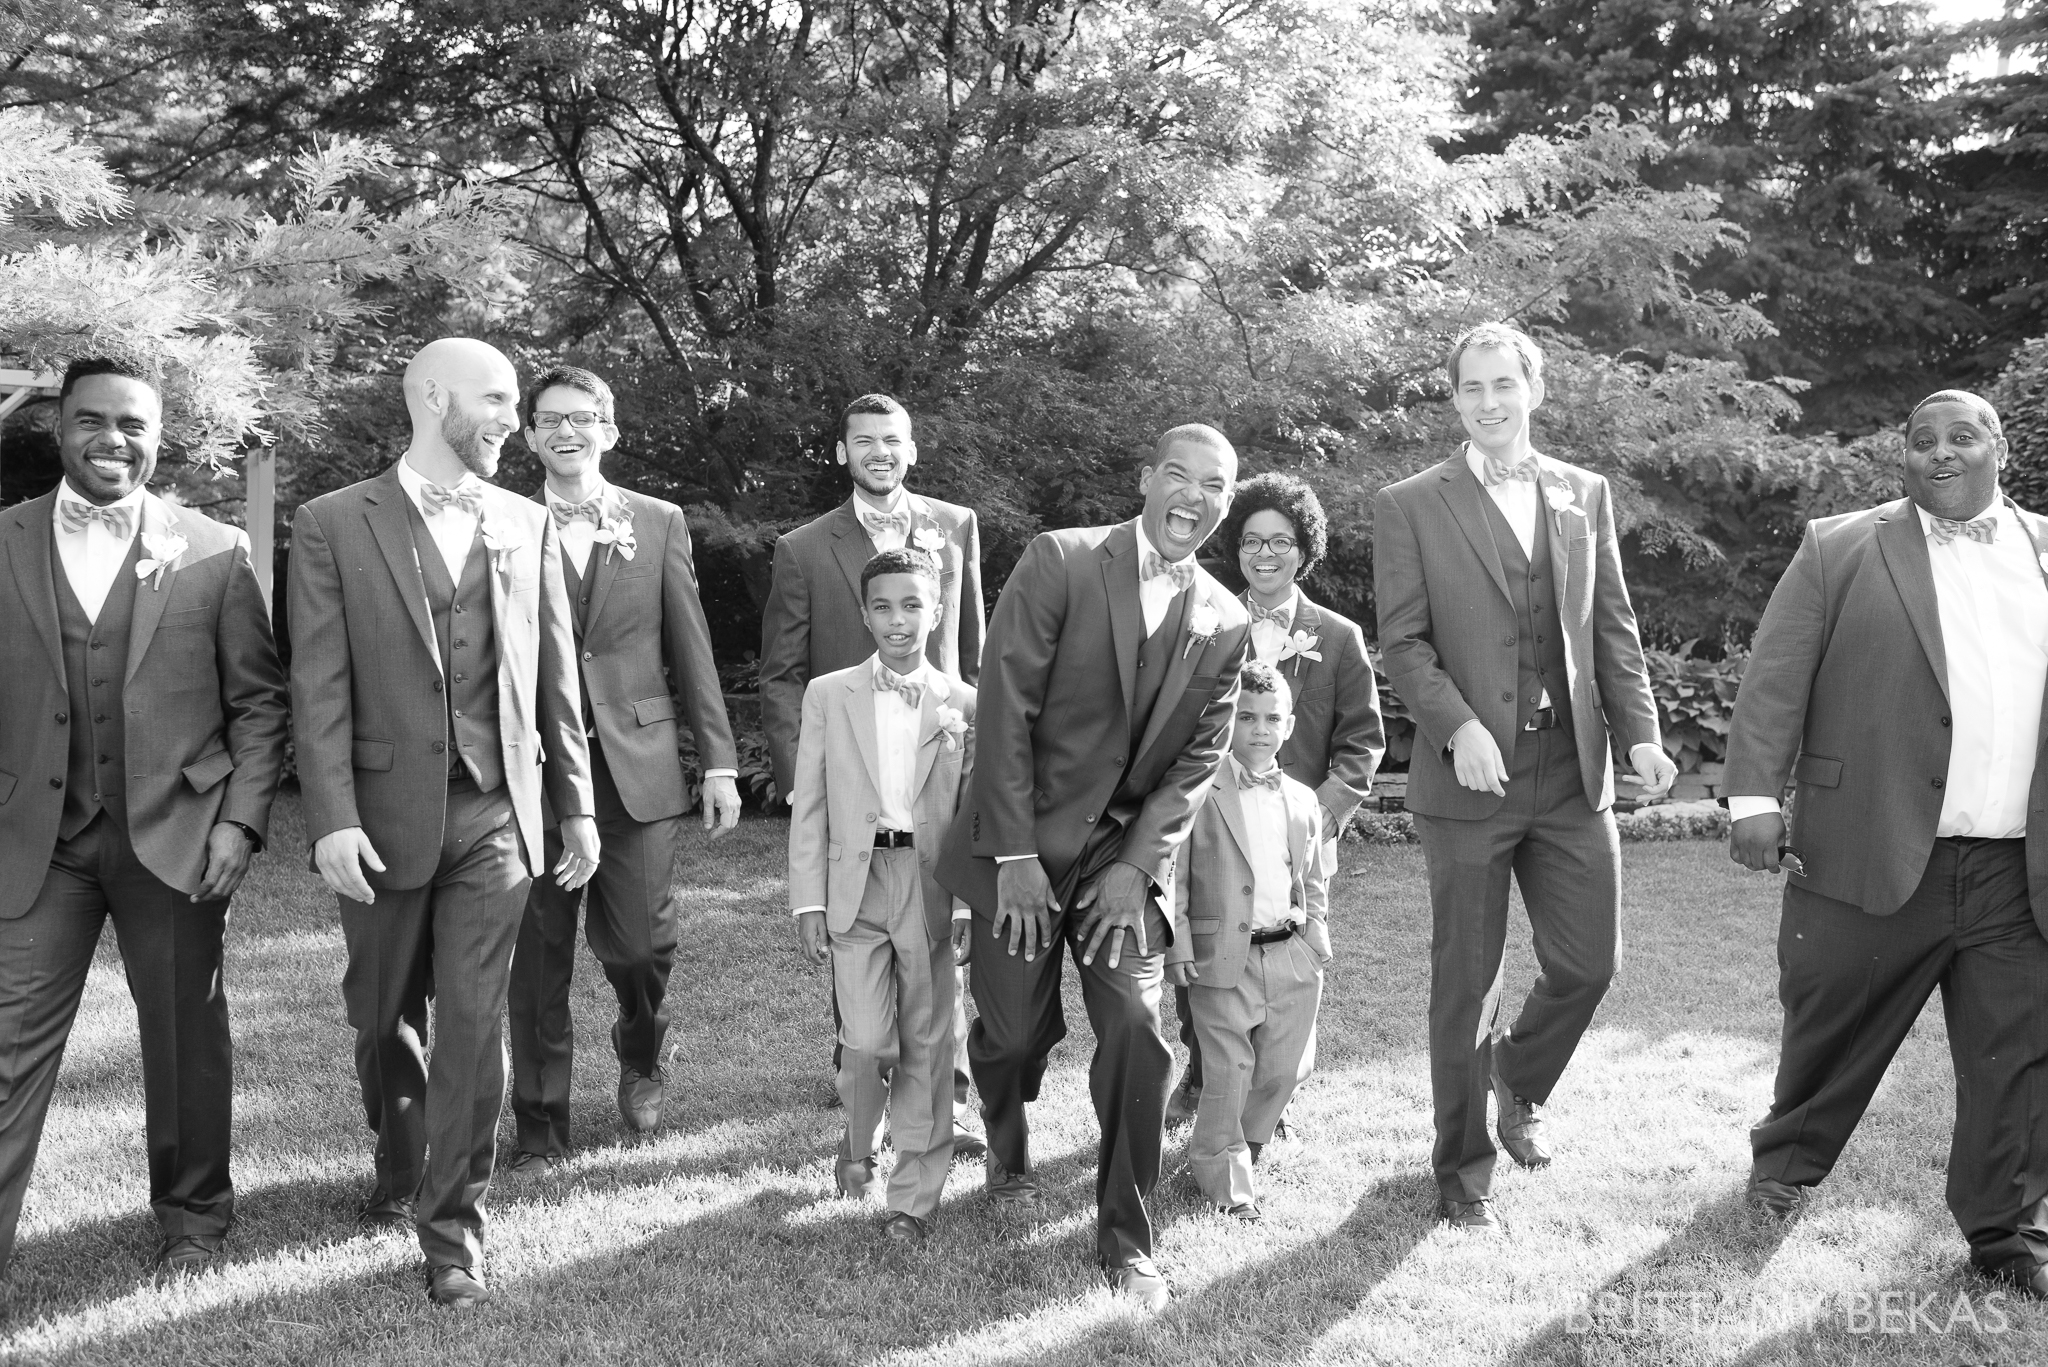 Patrick Haley Mansion Wedding - Brittany Bekas Photography_0015